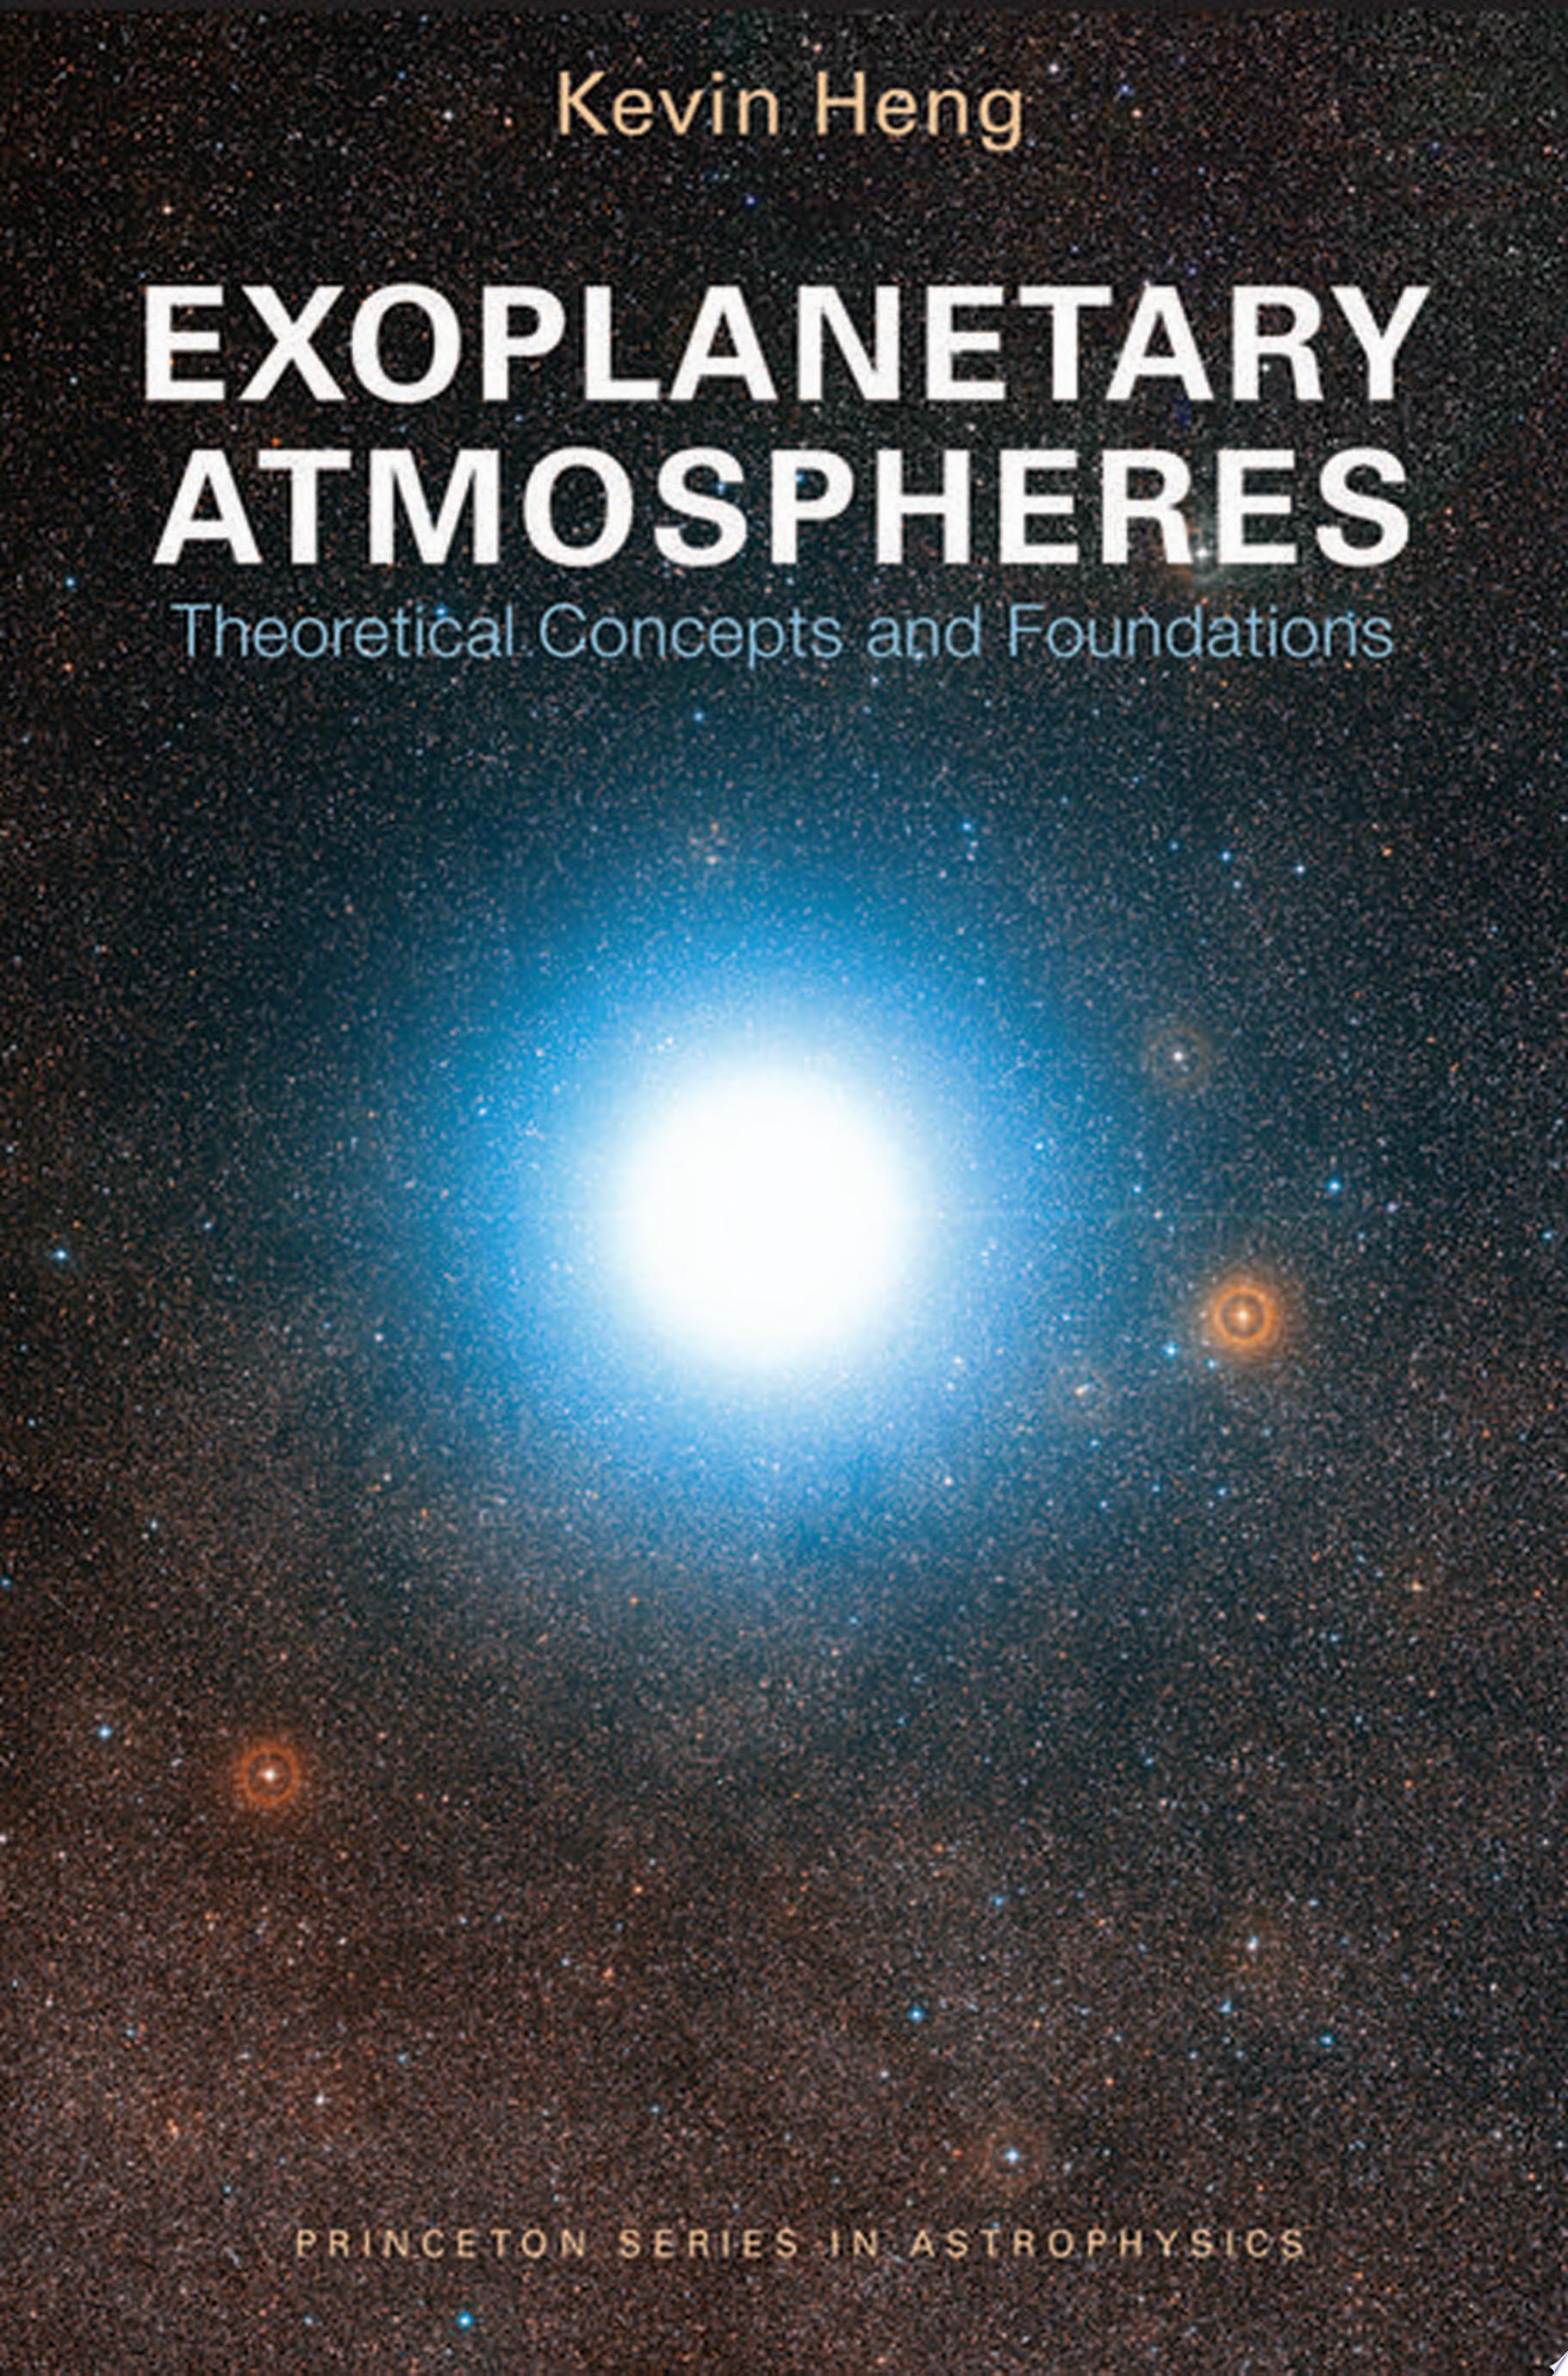 Exoplanetary Atmospheres